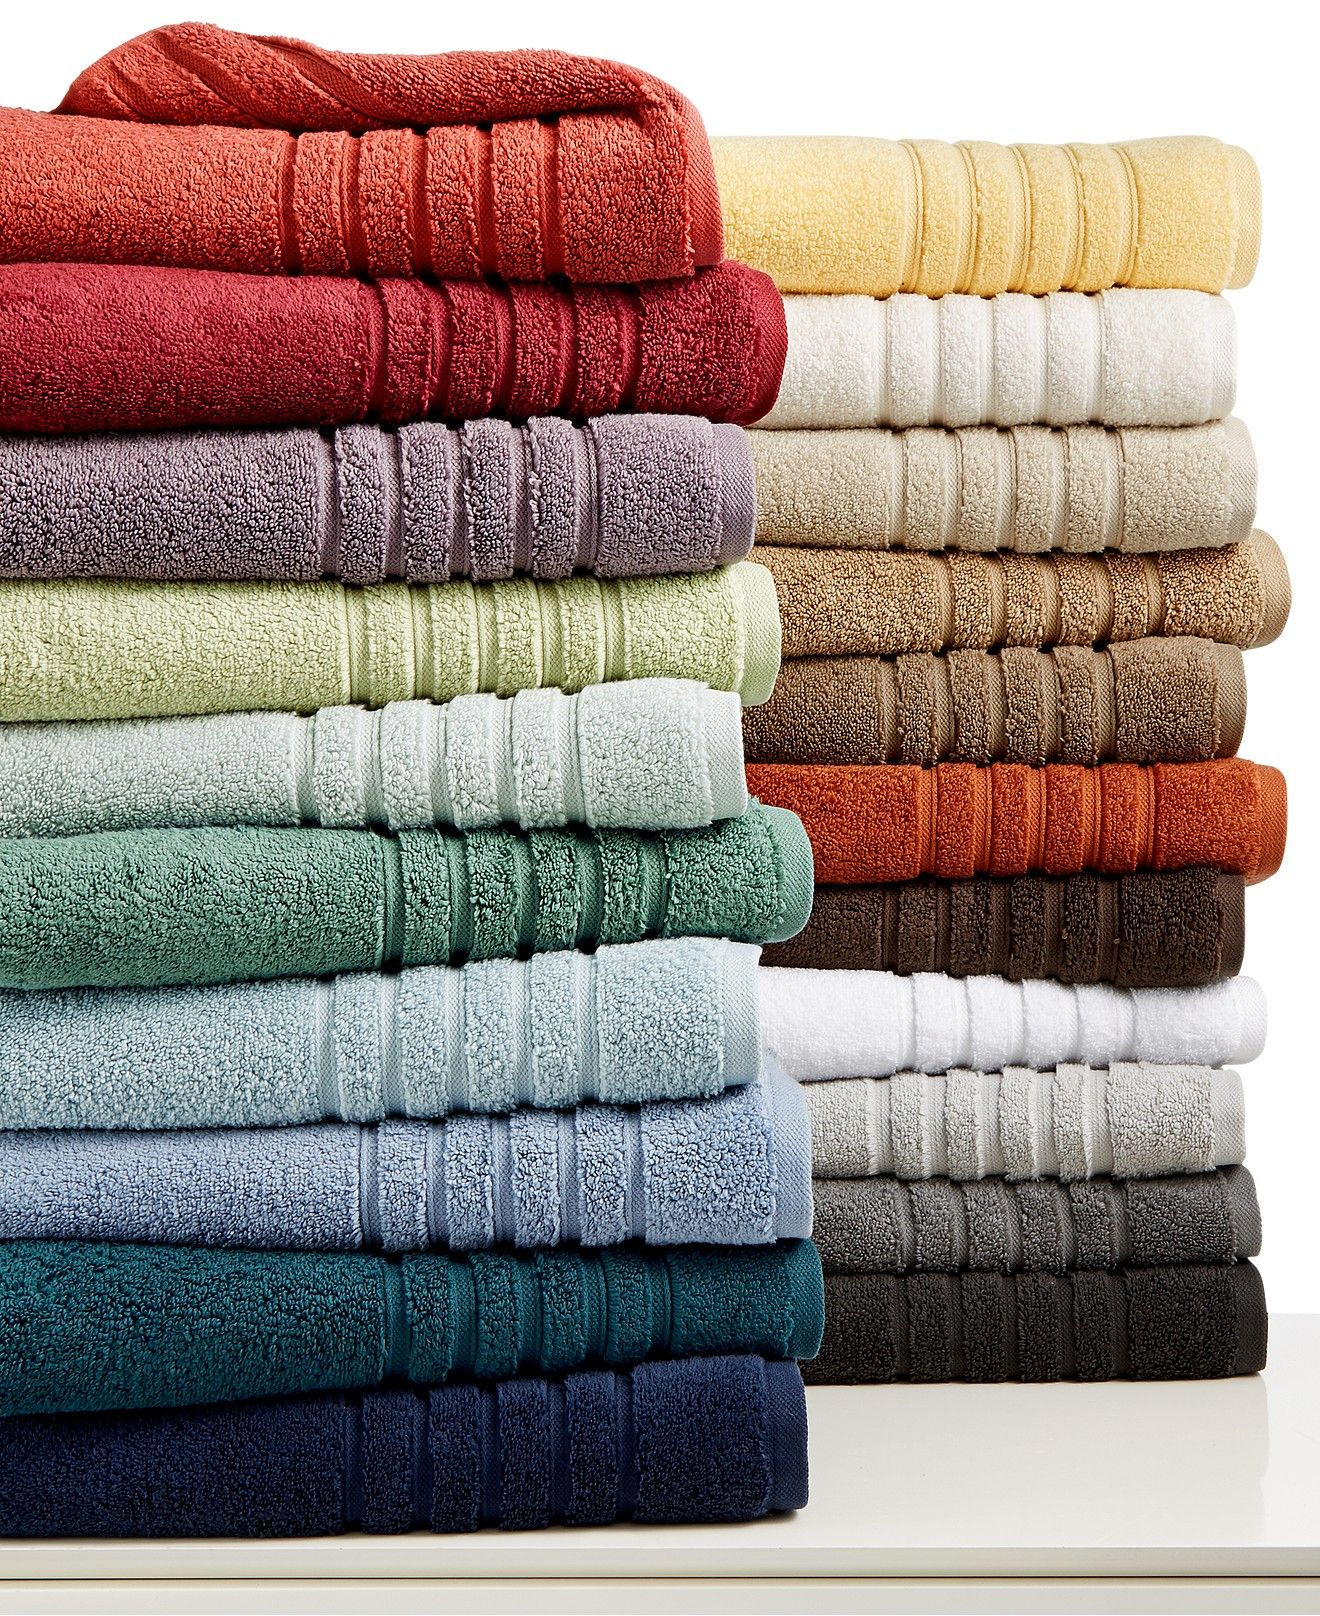 Ultimate Microcotton Bath Towel Collection 100 Cotton Created